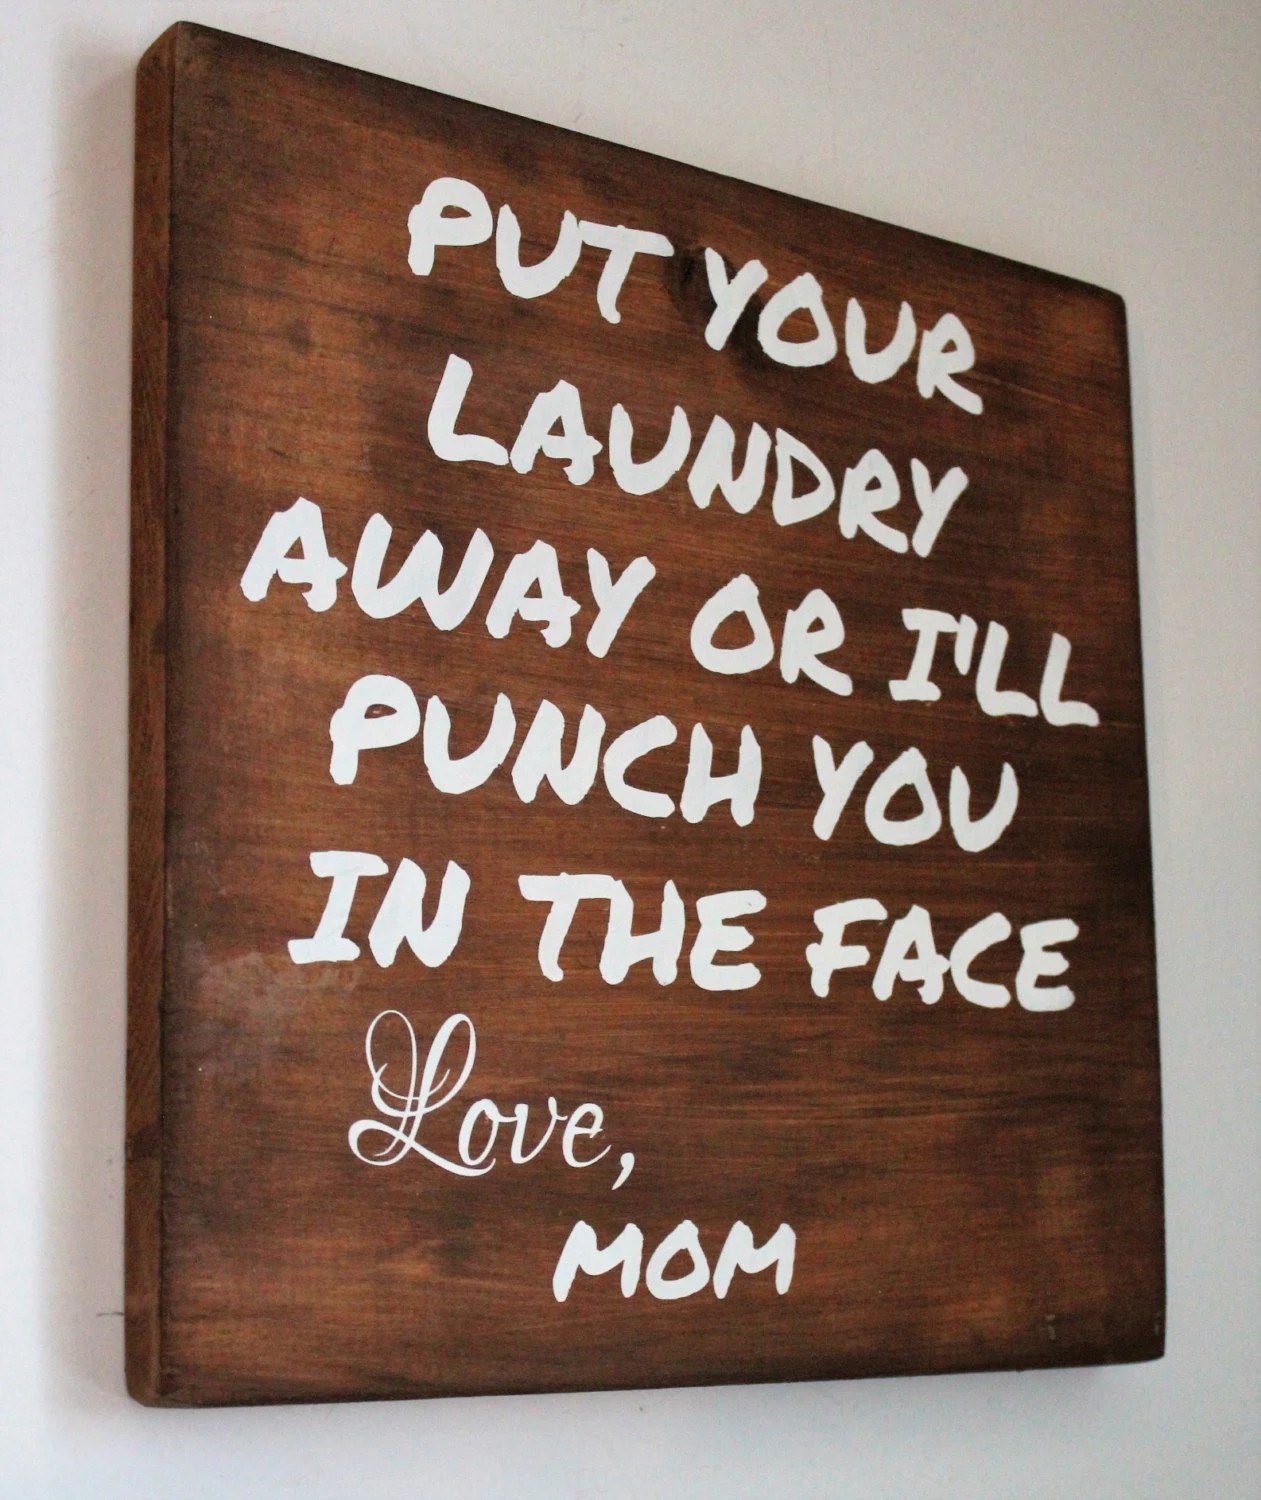 Funny Laundry Sign Put Your Laundry Away Or Iu0027ll Punch - create a gift certificate template